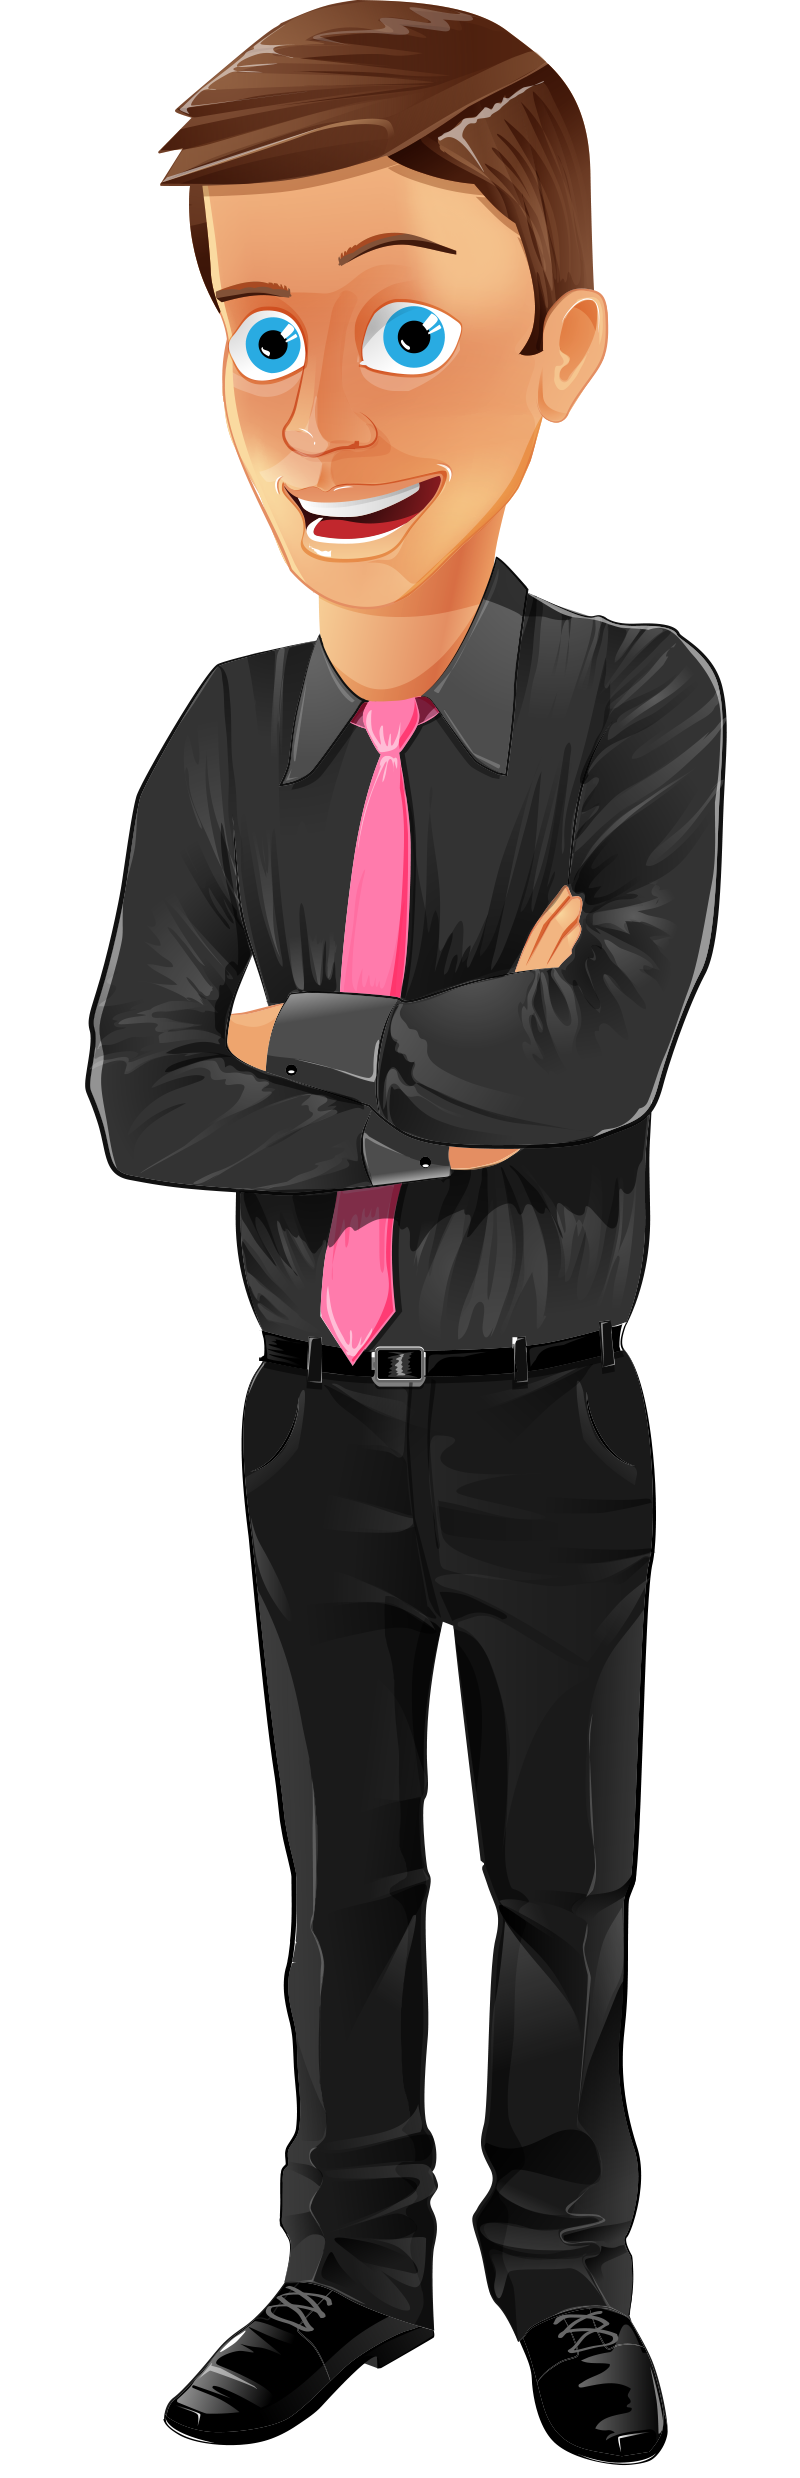 Animation vector formal. Office assistant character http